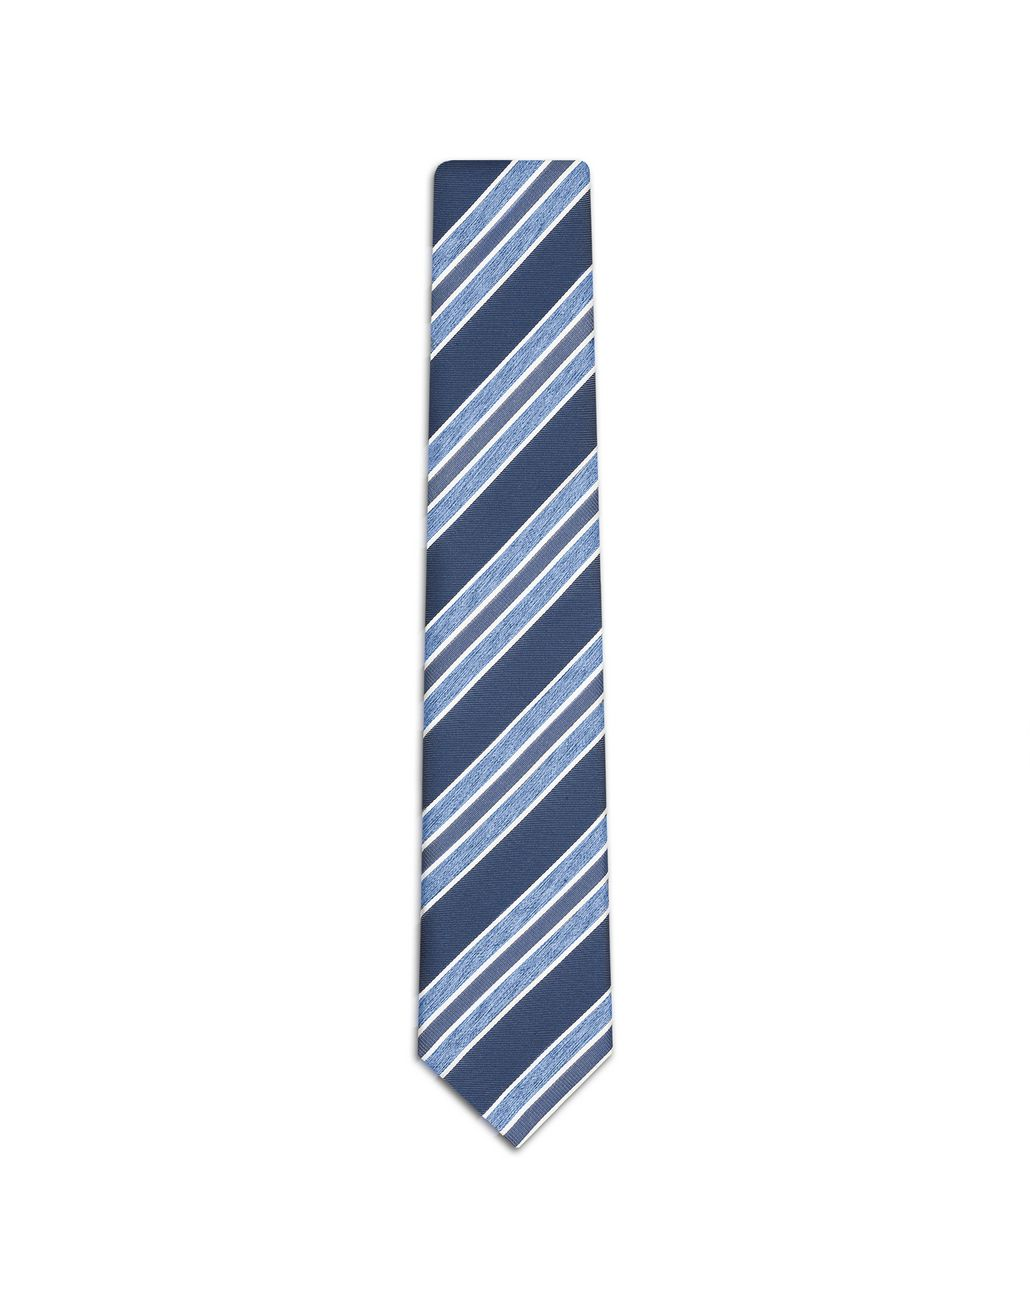 BRIONI Navy Blue and Sky Blue Regimental Tie Tie U f